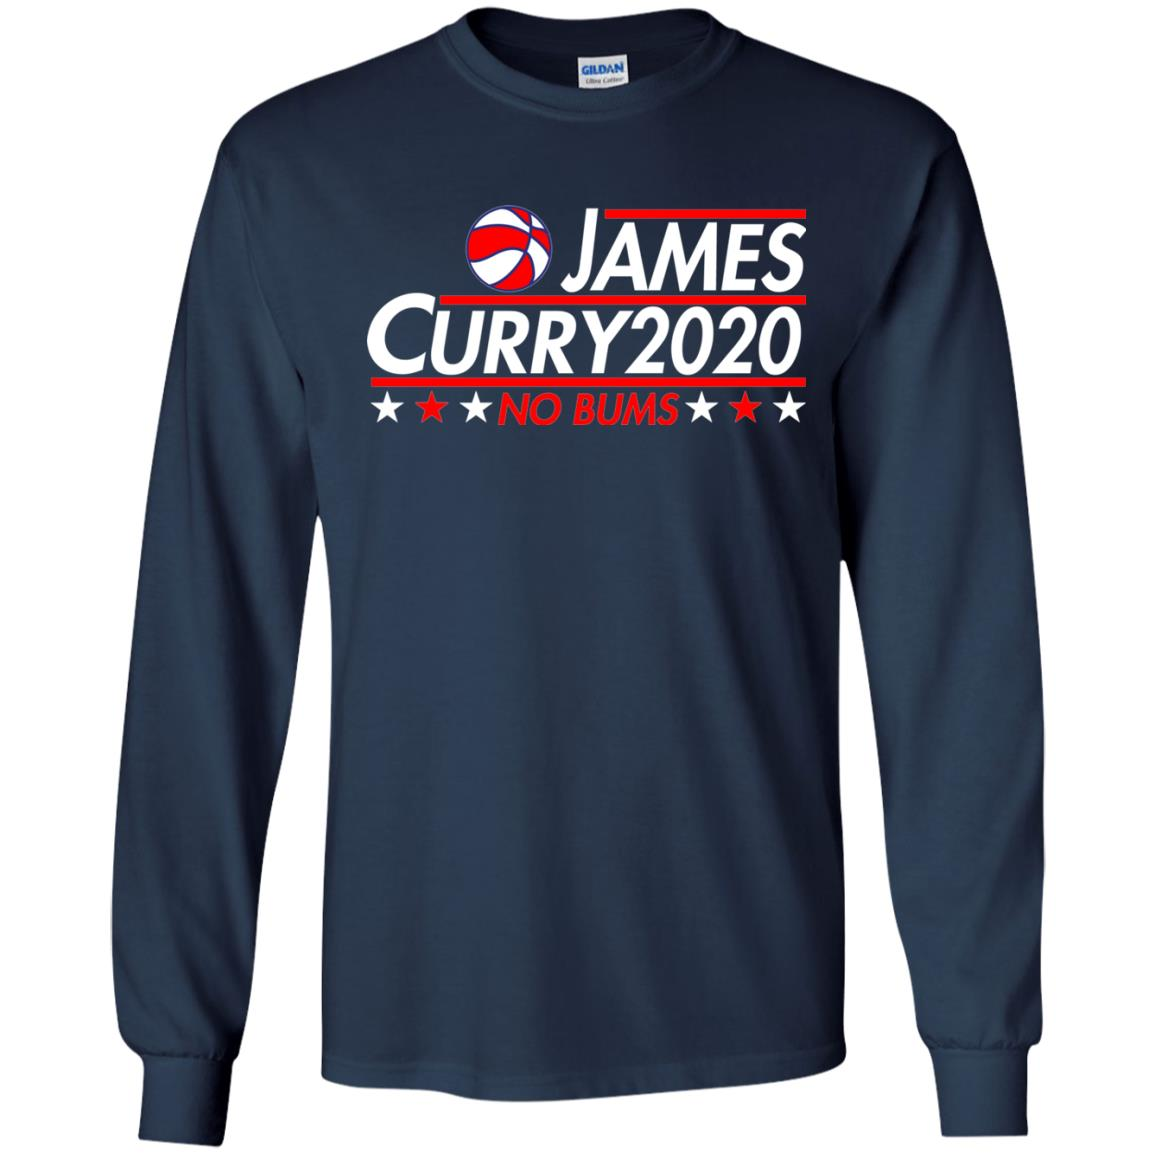 image 2169 - James Curry 2020 shirt No Bums: James & Curry for President